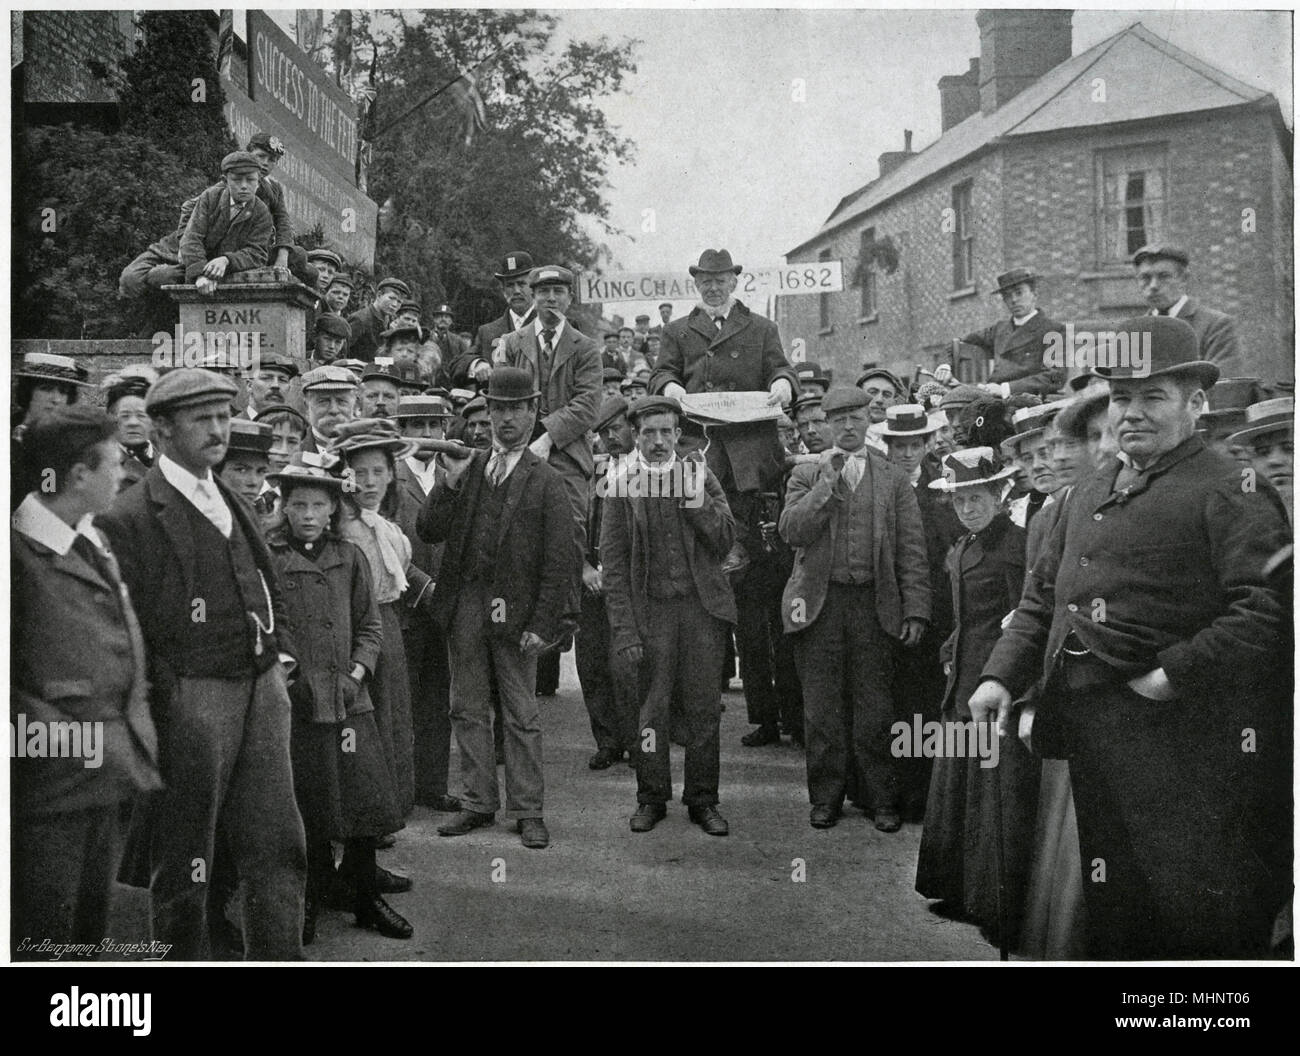 'The Chairman, with the Charter'. Corby Pole Fair, in Northamptonshire taken place every 20 years on Whit-Monday since 1682, in celebration of the charter granted by Elizabeth I exempting local landowners from bridge tolls throughout the Kingdom. Photograph showing here of a procession with band at the head and organisers' leaders seated in chairs attached to poles which are borne on the shoulders of some of the men.      Date: 1902 - Stock Image